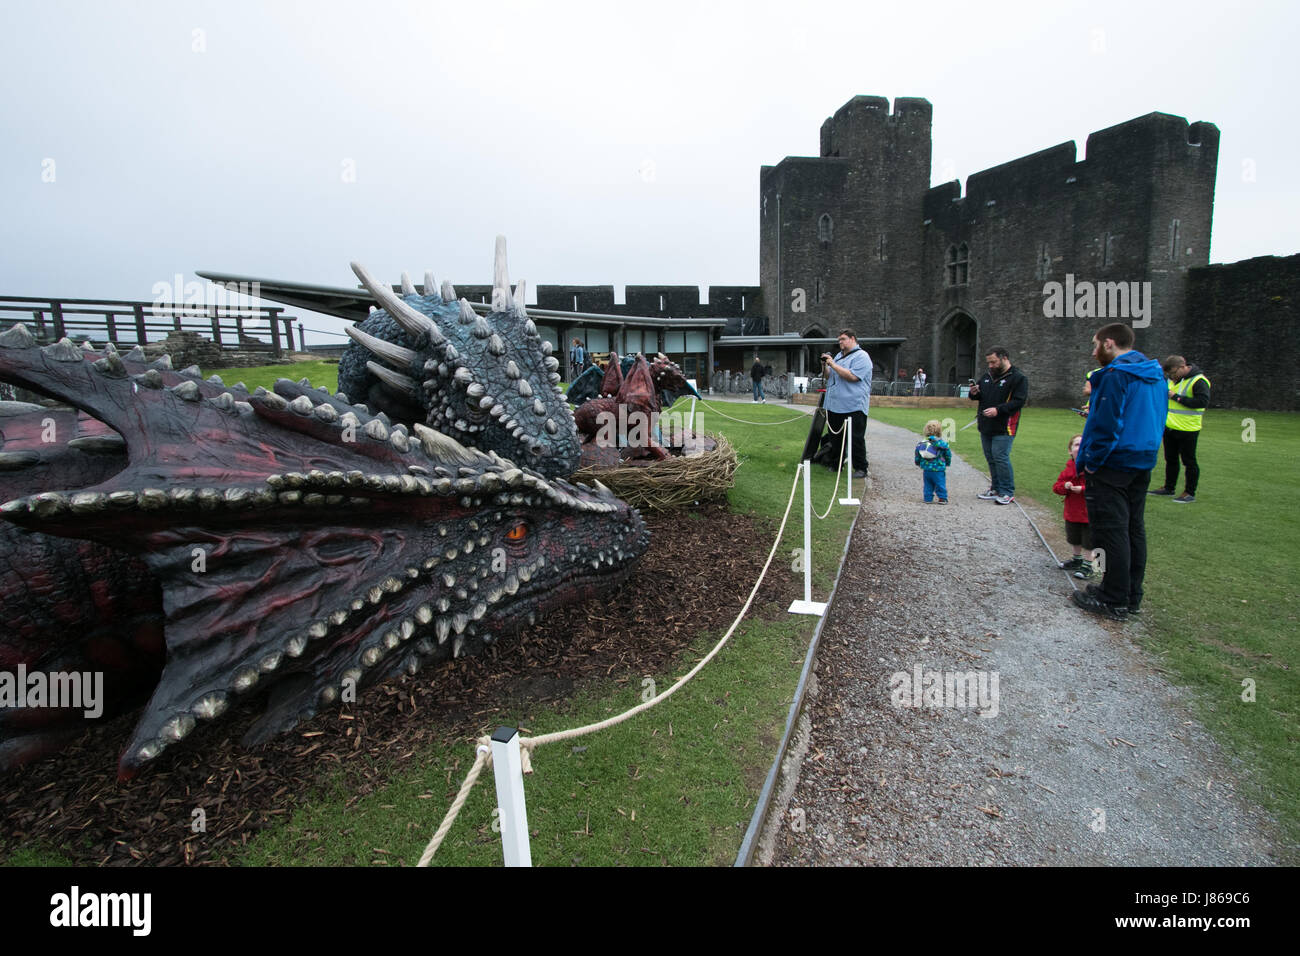 Caerphilly Castle, South Wales, UK.  27 May 2017. 2 new additions have been made to the dragon sculpture displays - Stock Image